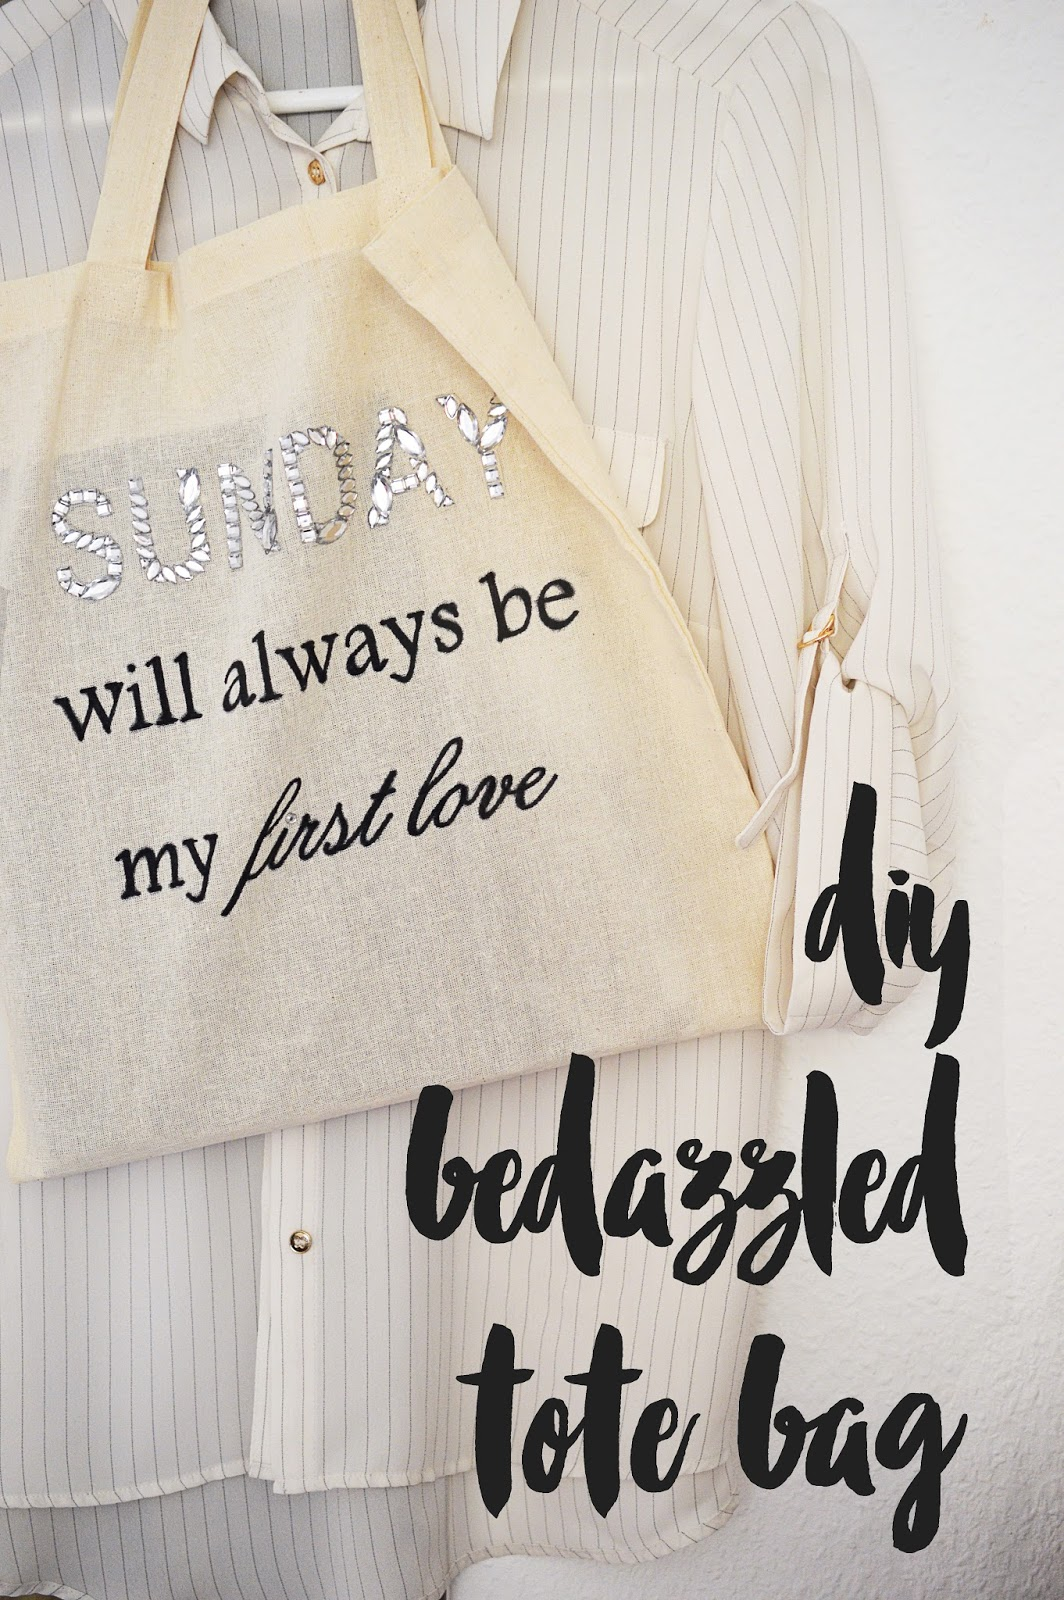 DIY Bedazzled Tote Bag | Motte's Blog